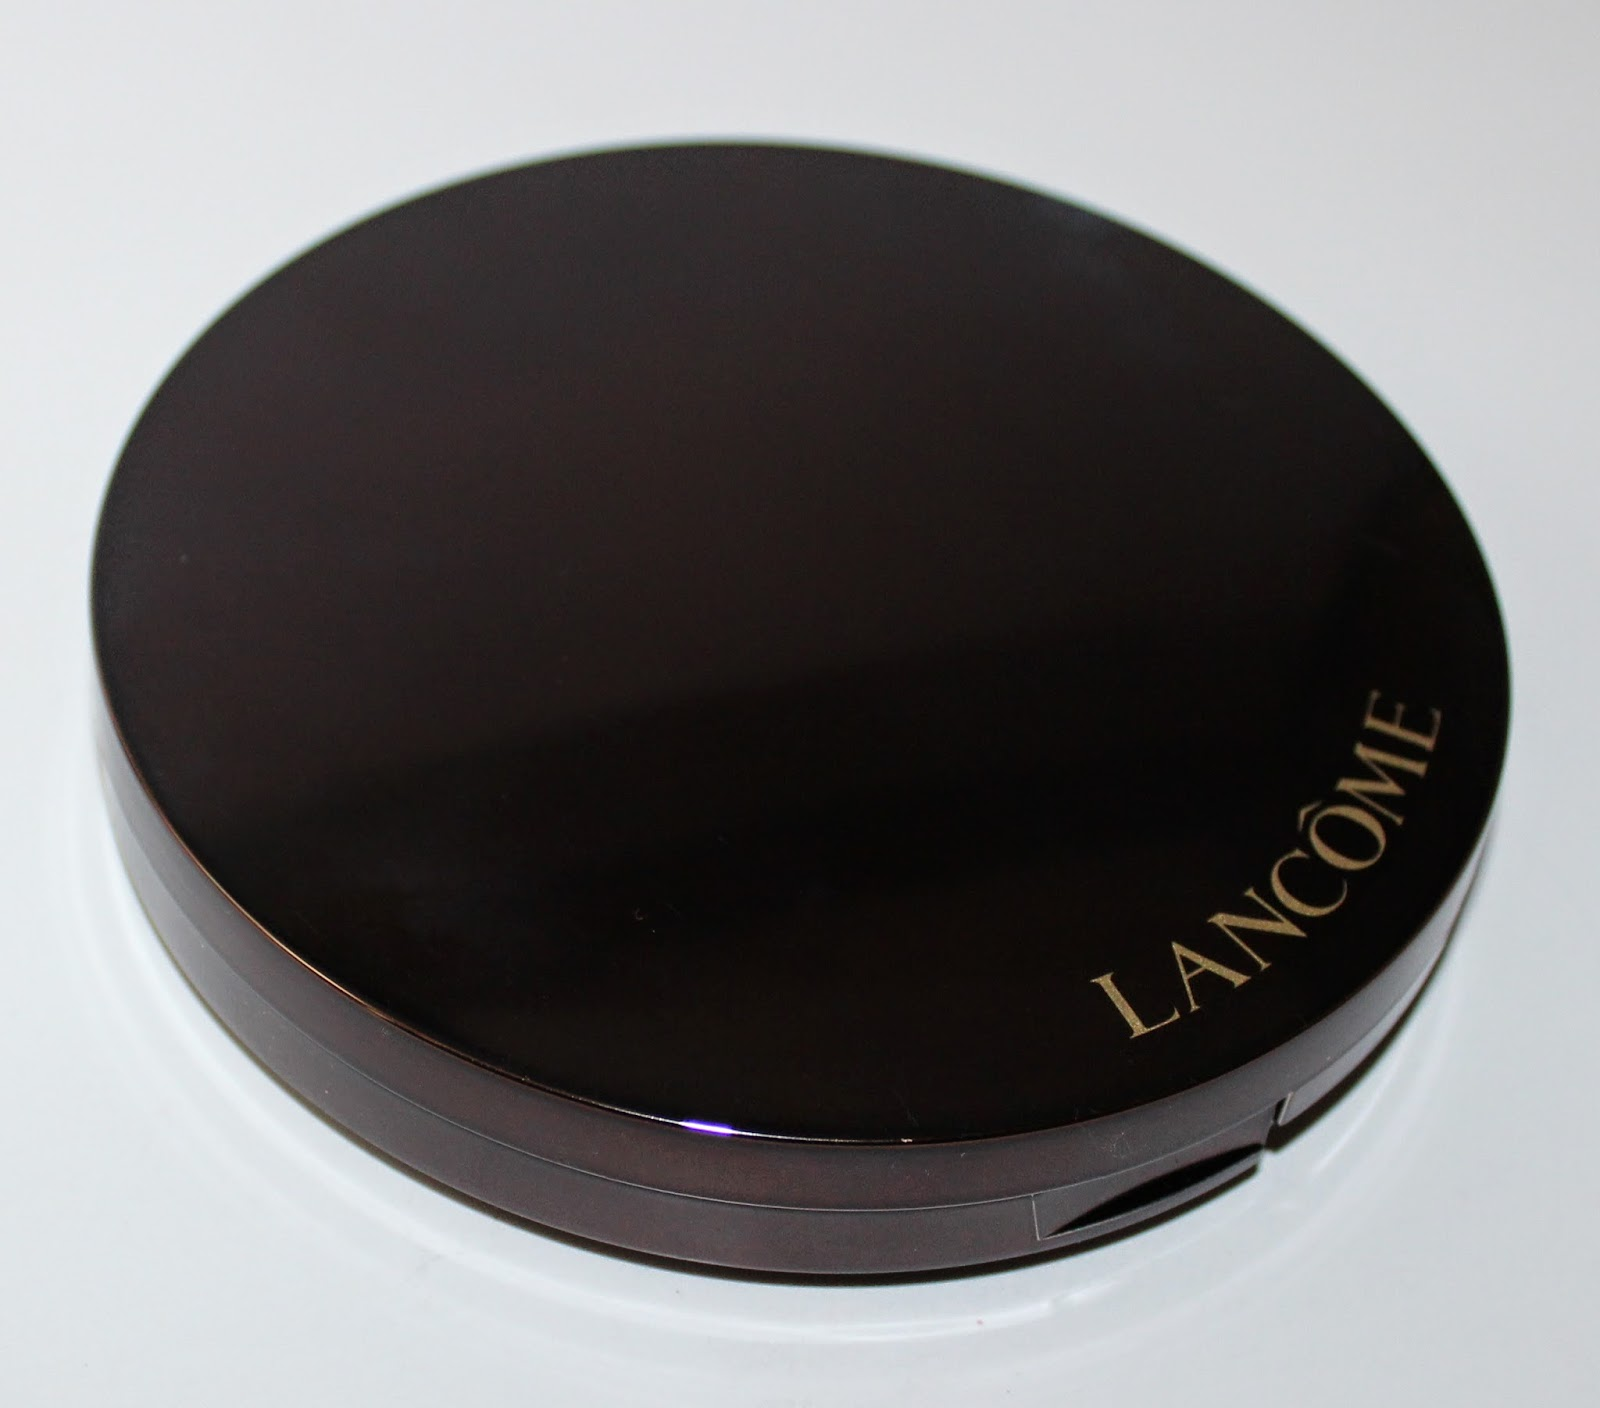 Lancôme Golden Riviera Collection Star Bronzing Powder